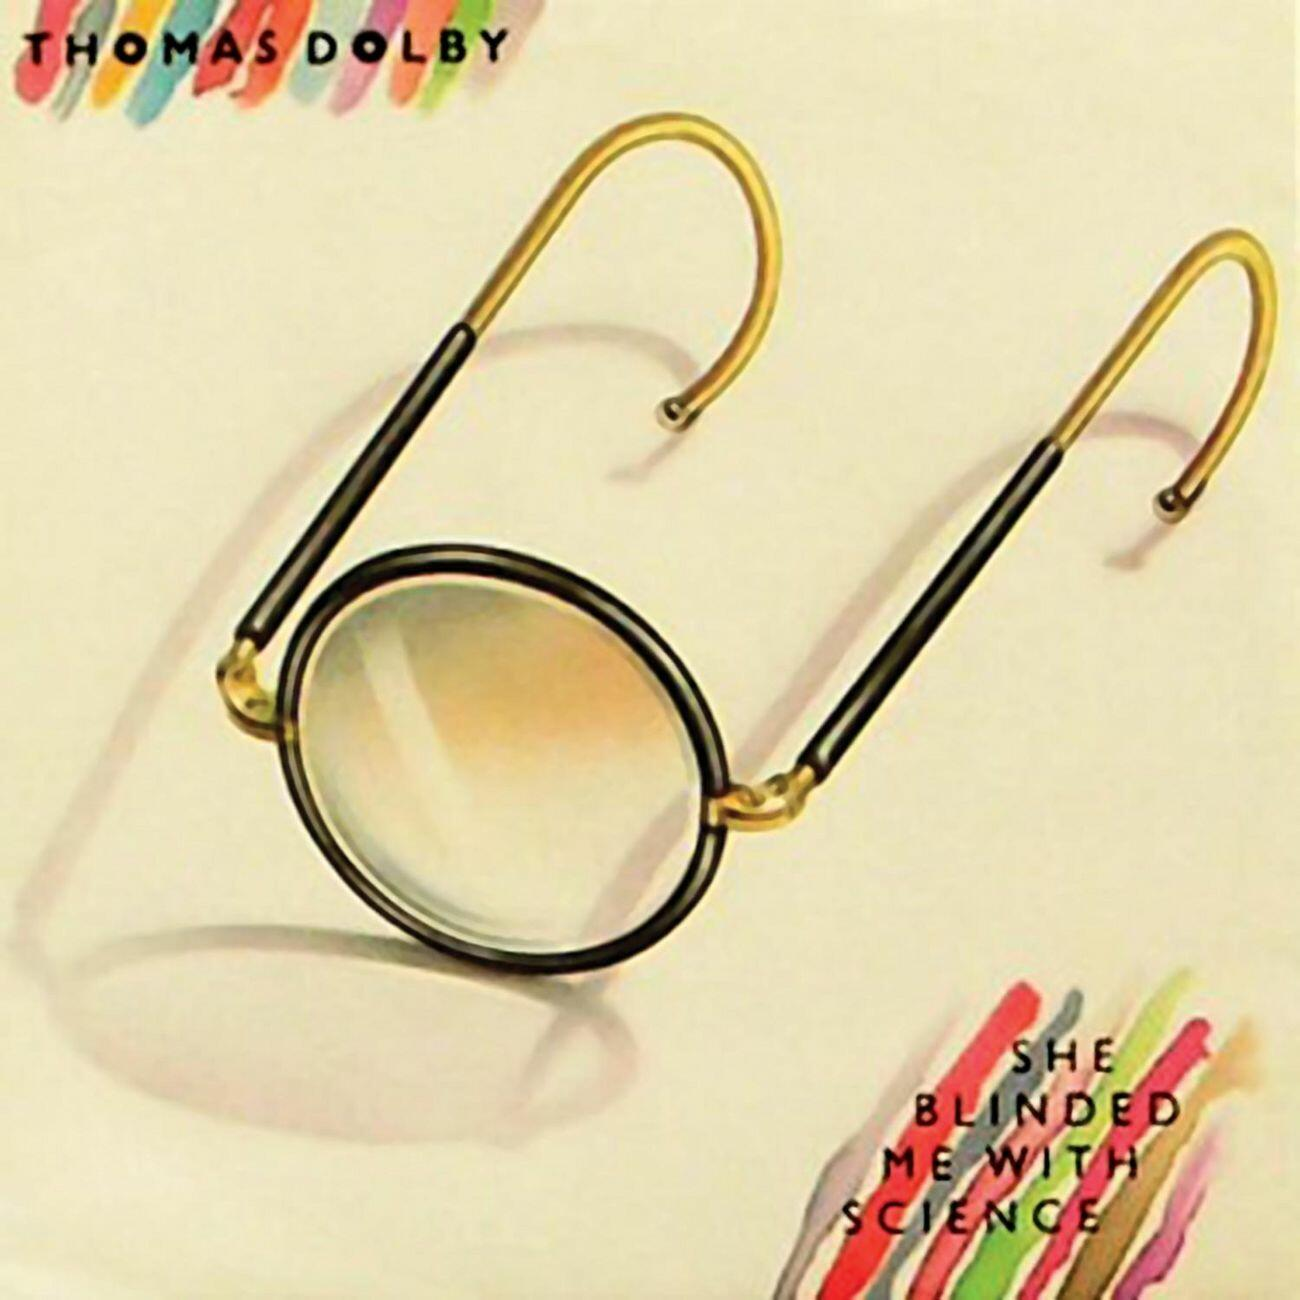 Listen Free To Thomas Dolby She Blinded Me With Science